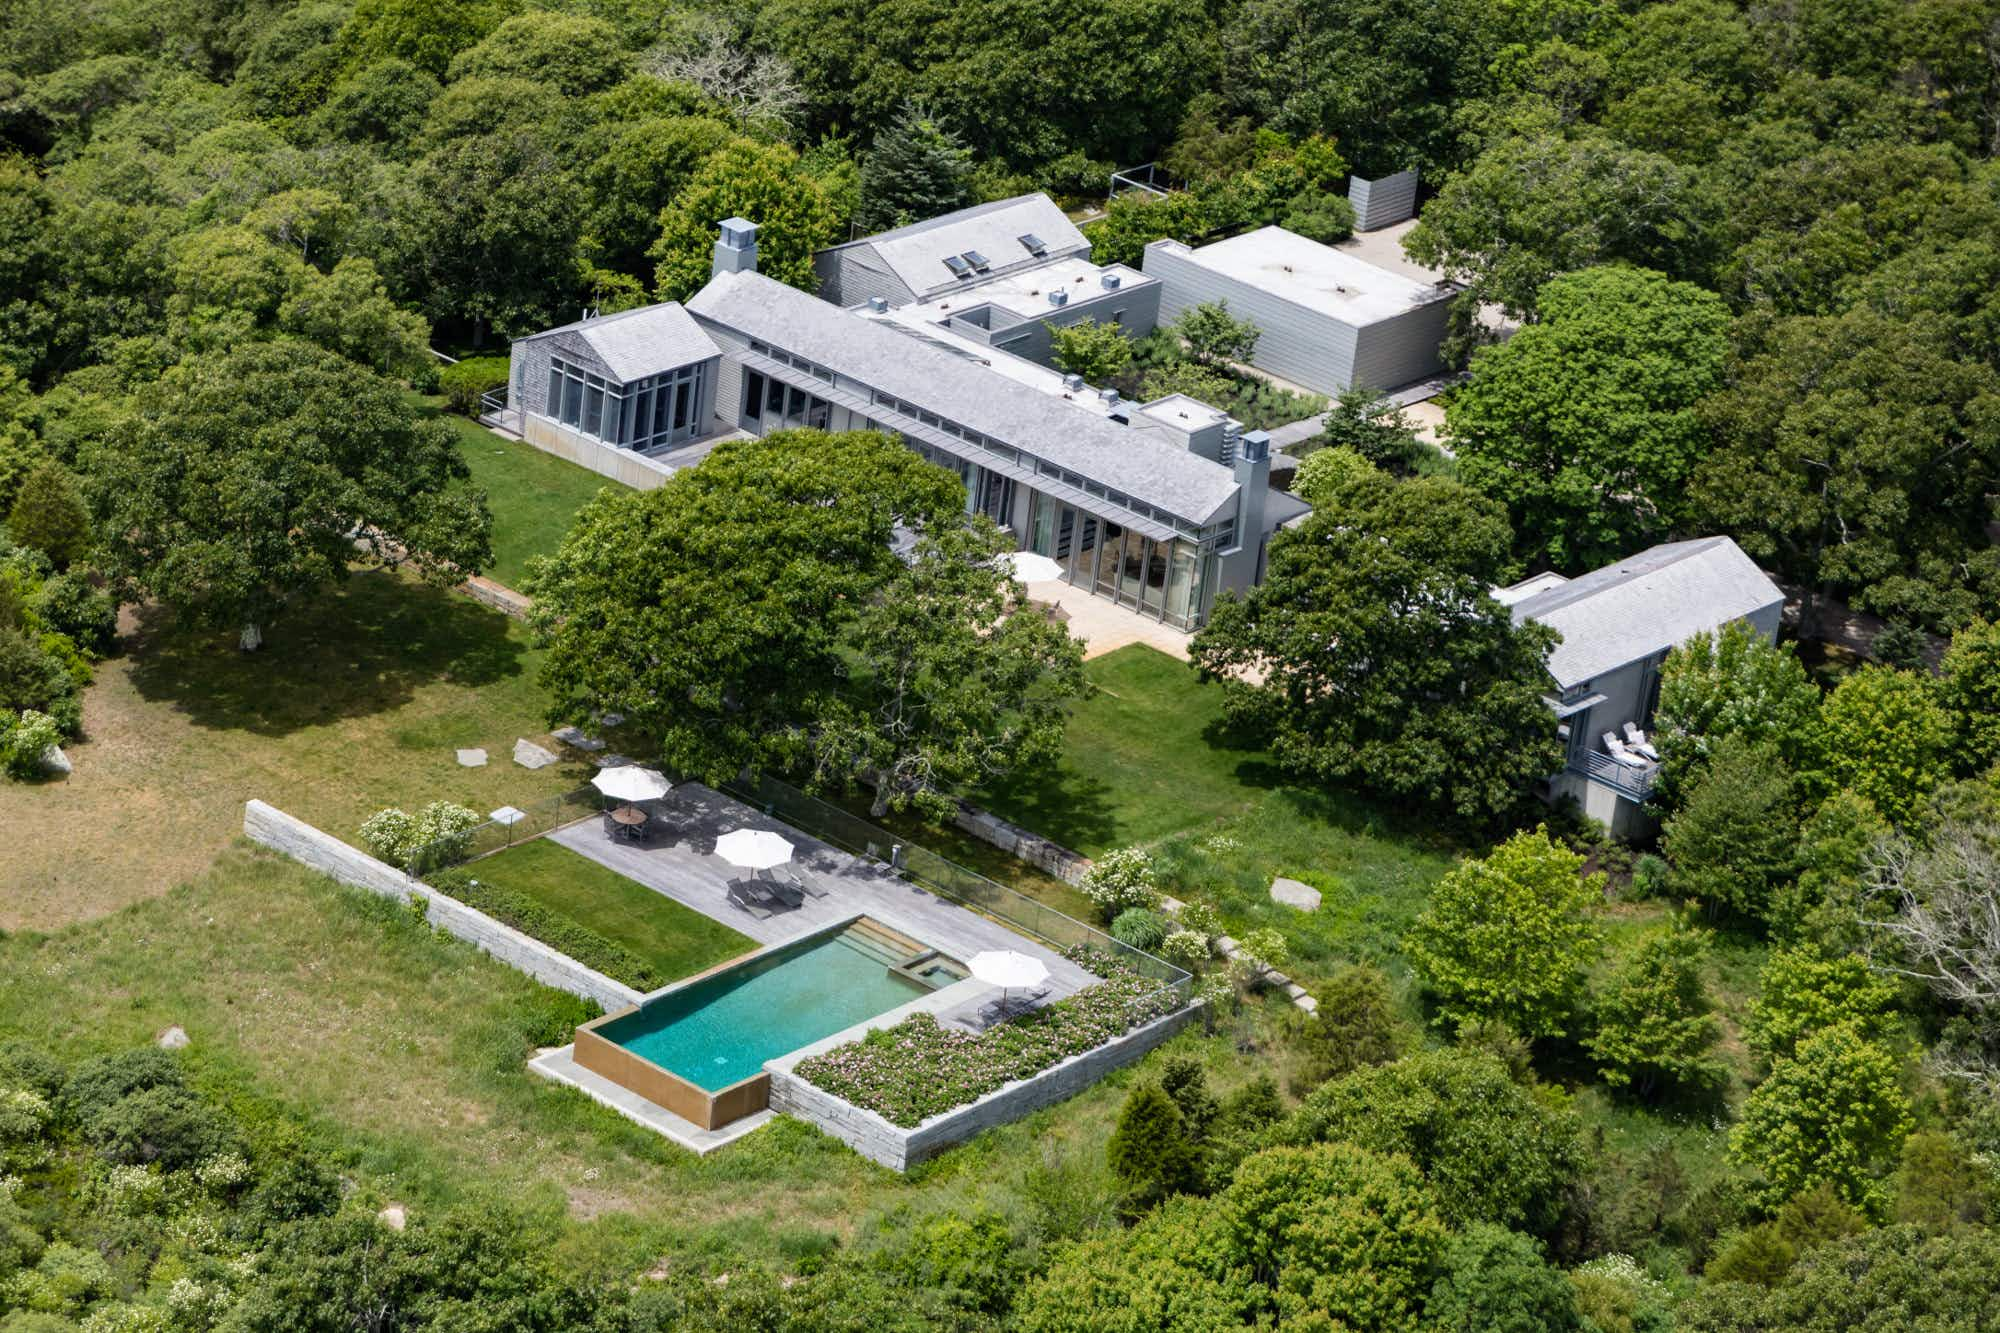 The Obama's Martha's Vineyard vacation home is up for sale